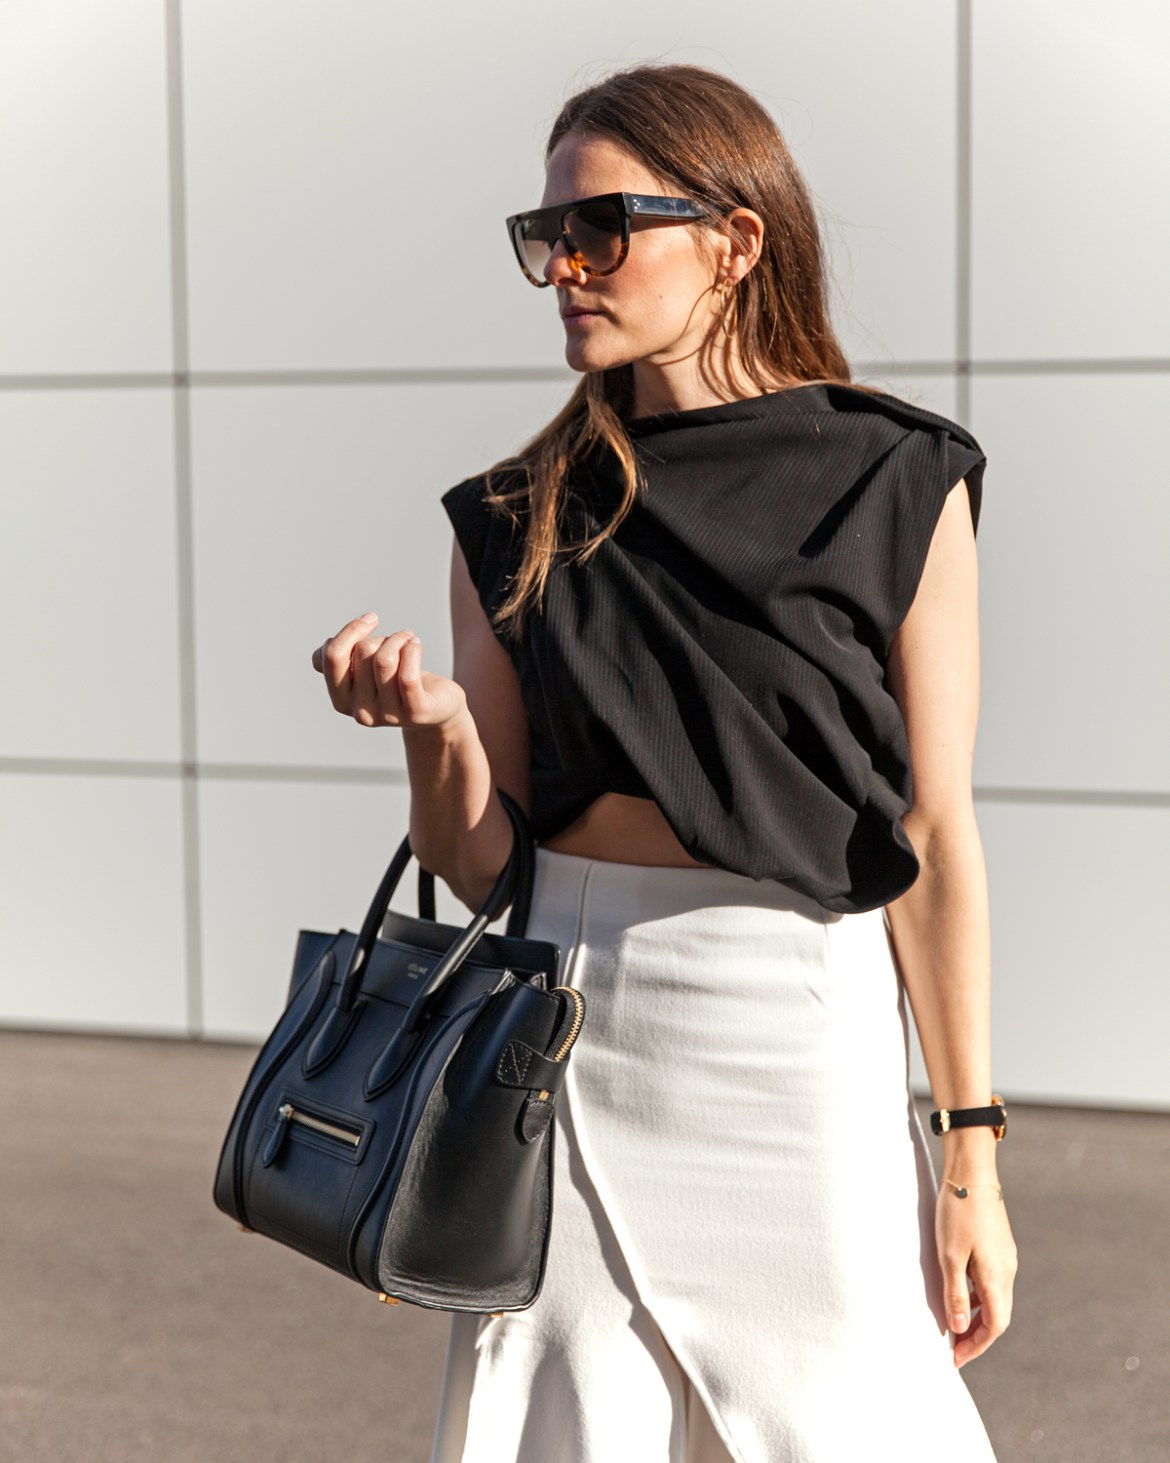 midi skirts, five reasons you need one, Ellery Crop, Celine sunglasses, Celine tote, Hello Parry midi skirt worn by Inspiring Wit fashion blogger Jenelle Witty